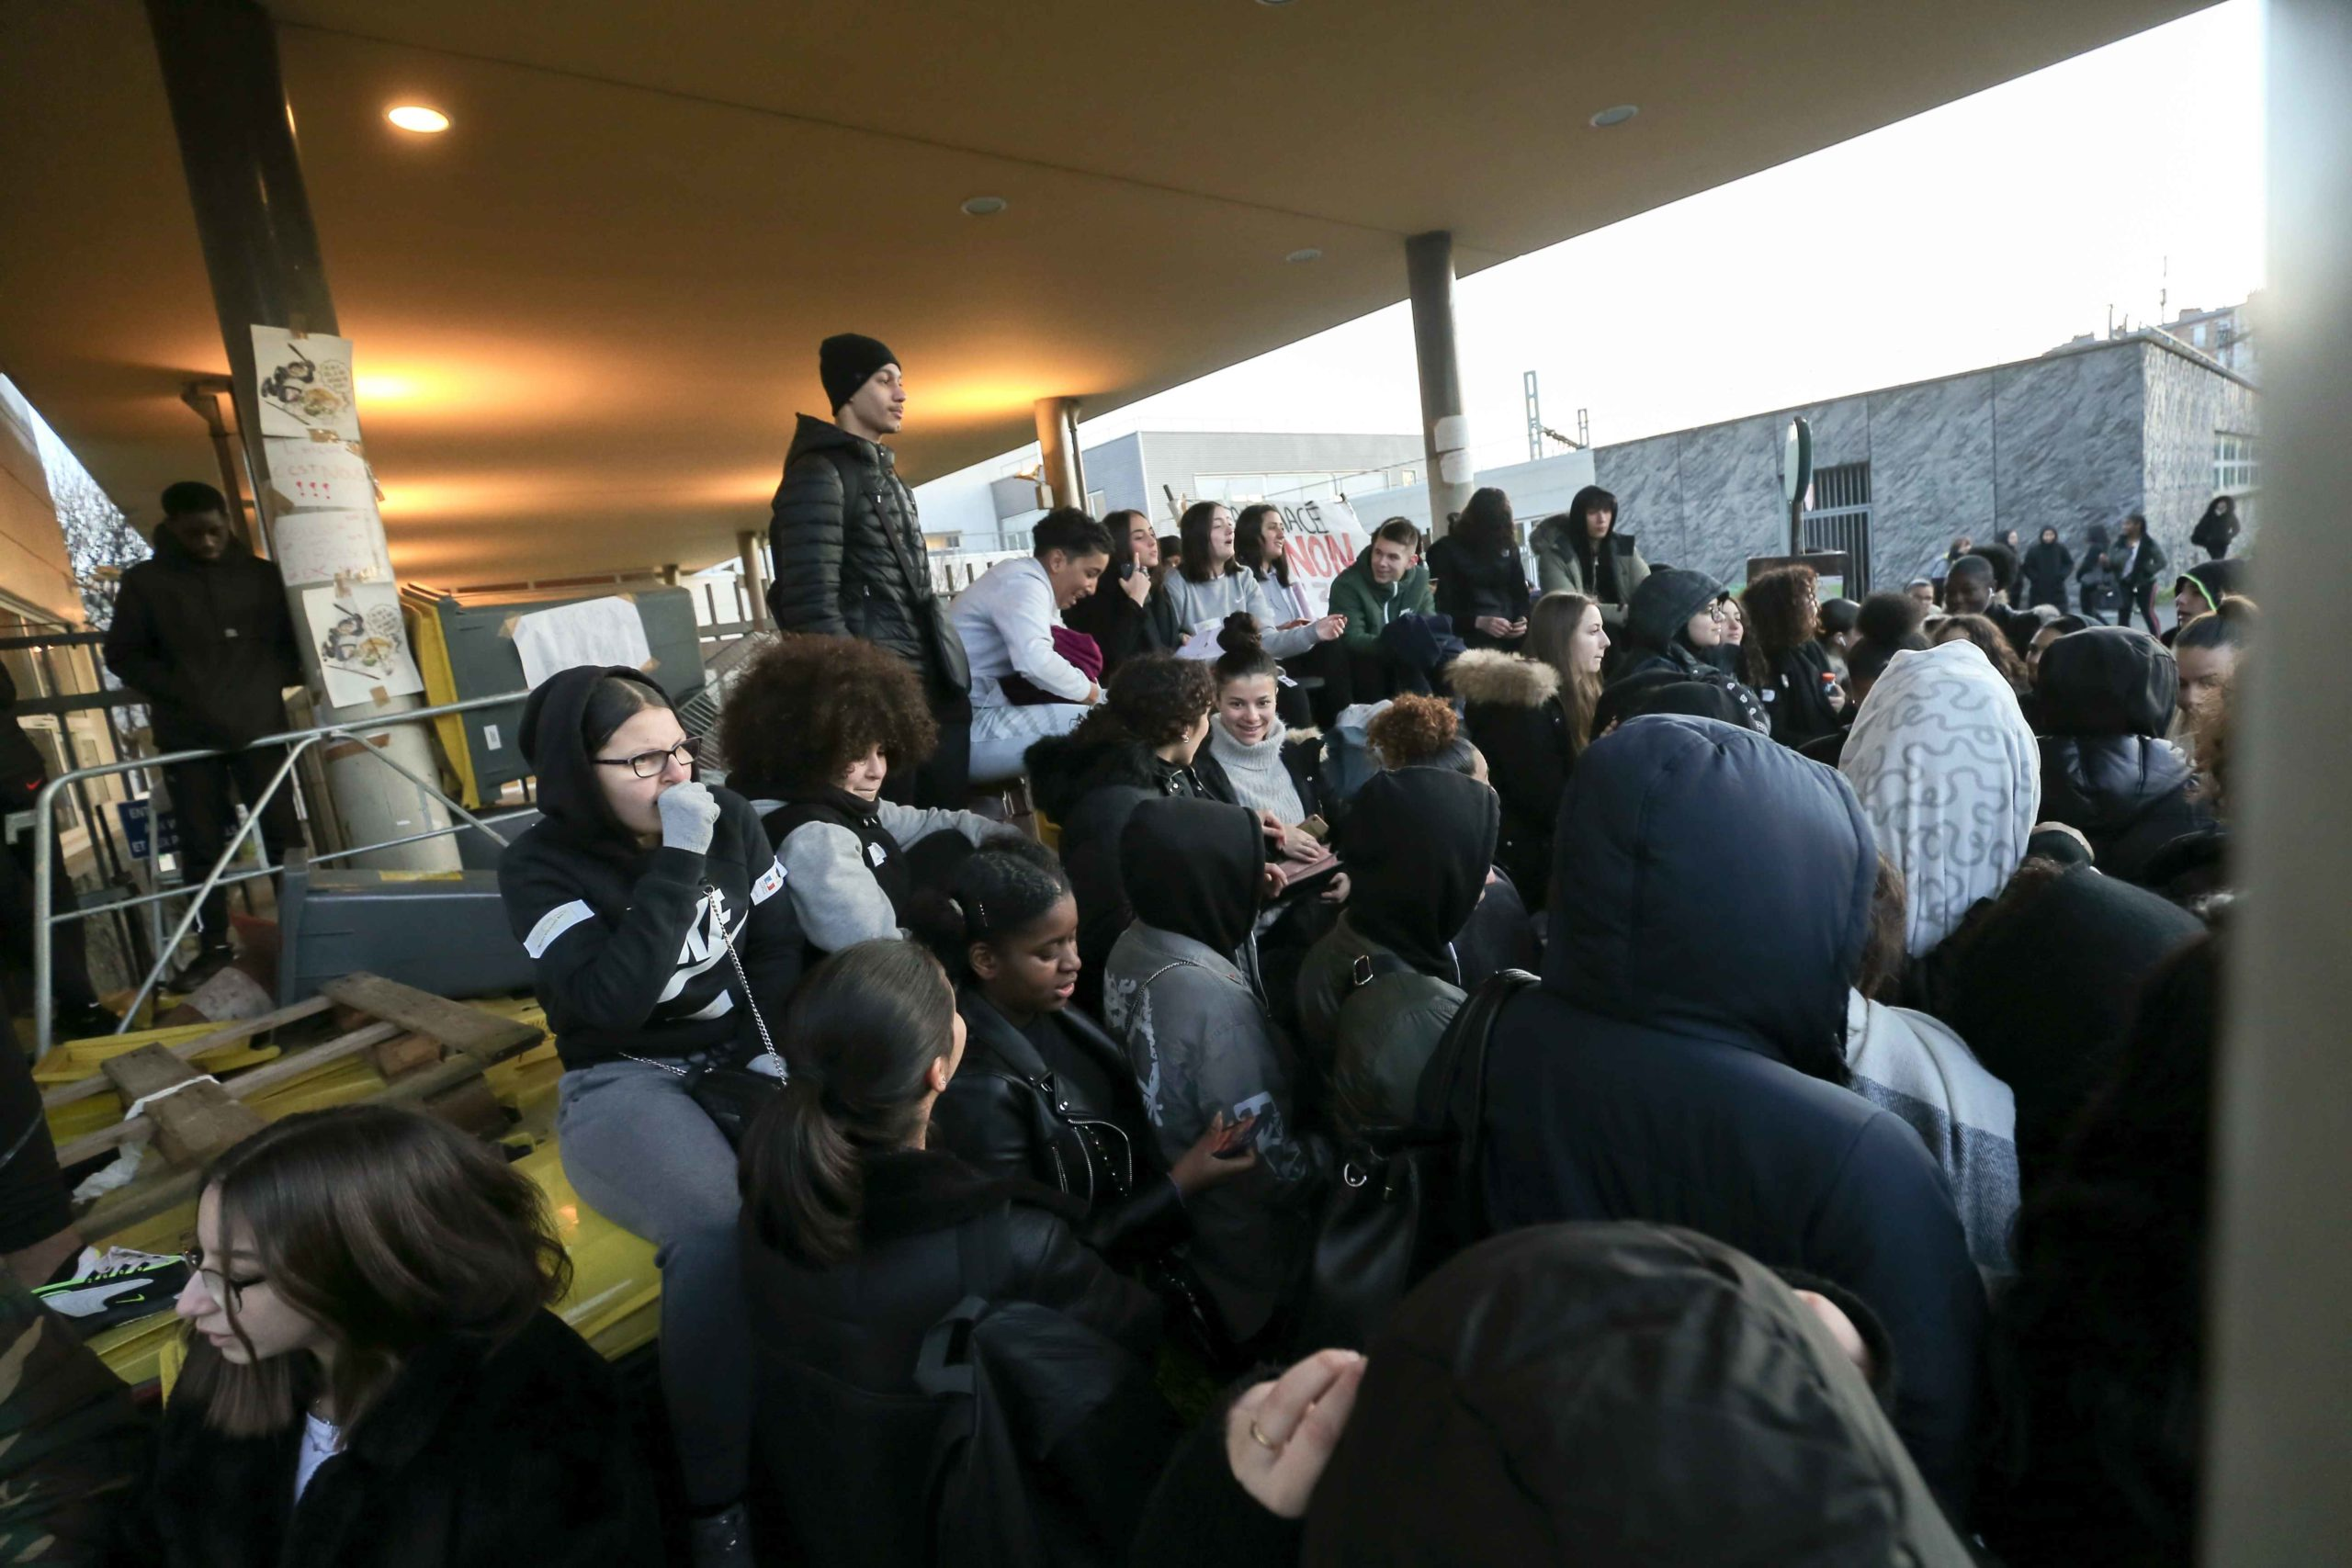 Students opposed to the implementation of the baccalaureate reform (E3C) organize a blockade at the Lycee Jean Macé in front of their establishment, located in Vitry-sur-Seine, in the southern suburbs of Paris, on 6 February 6, 2020.The demonstration took